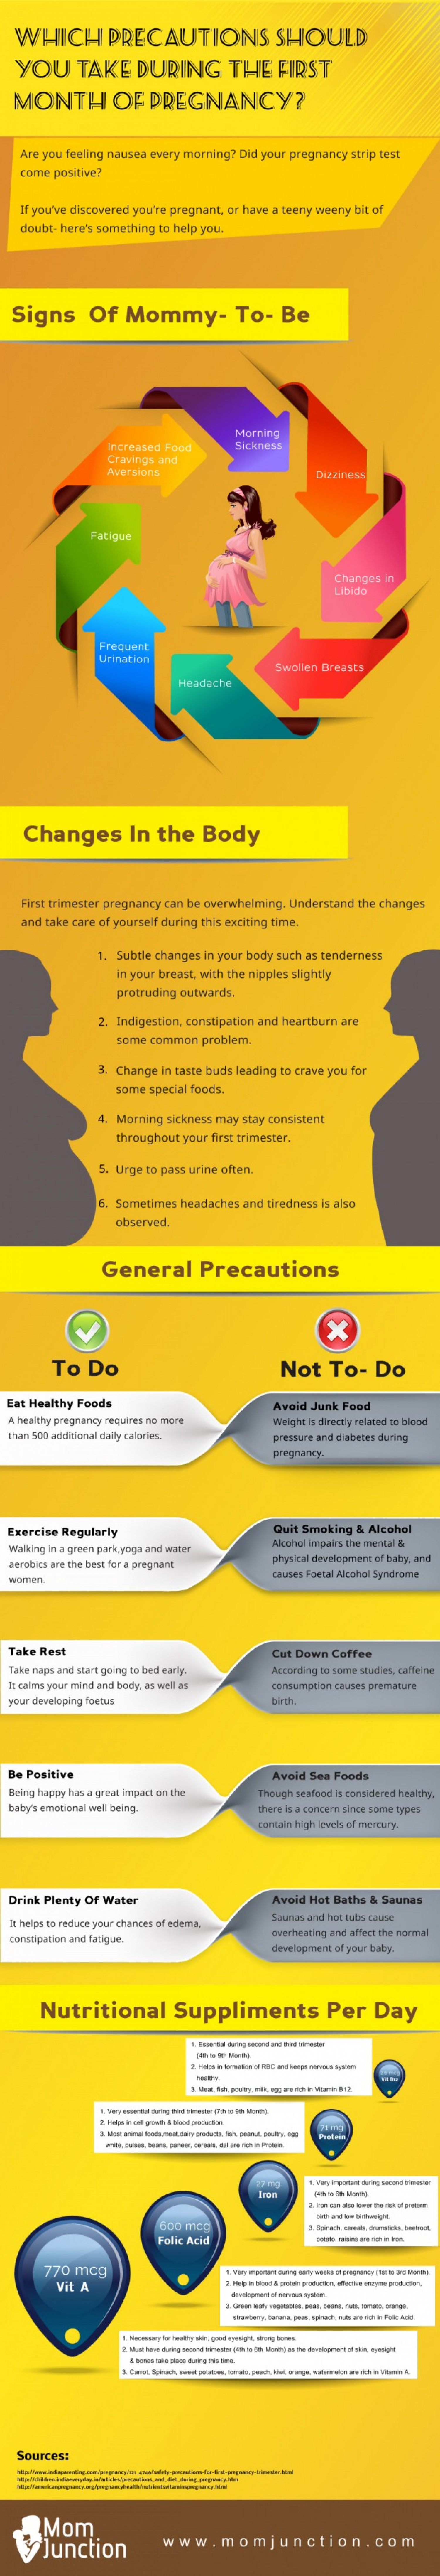 Precautions You Should Take During the First Month Pregnancy  Infographic